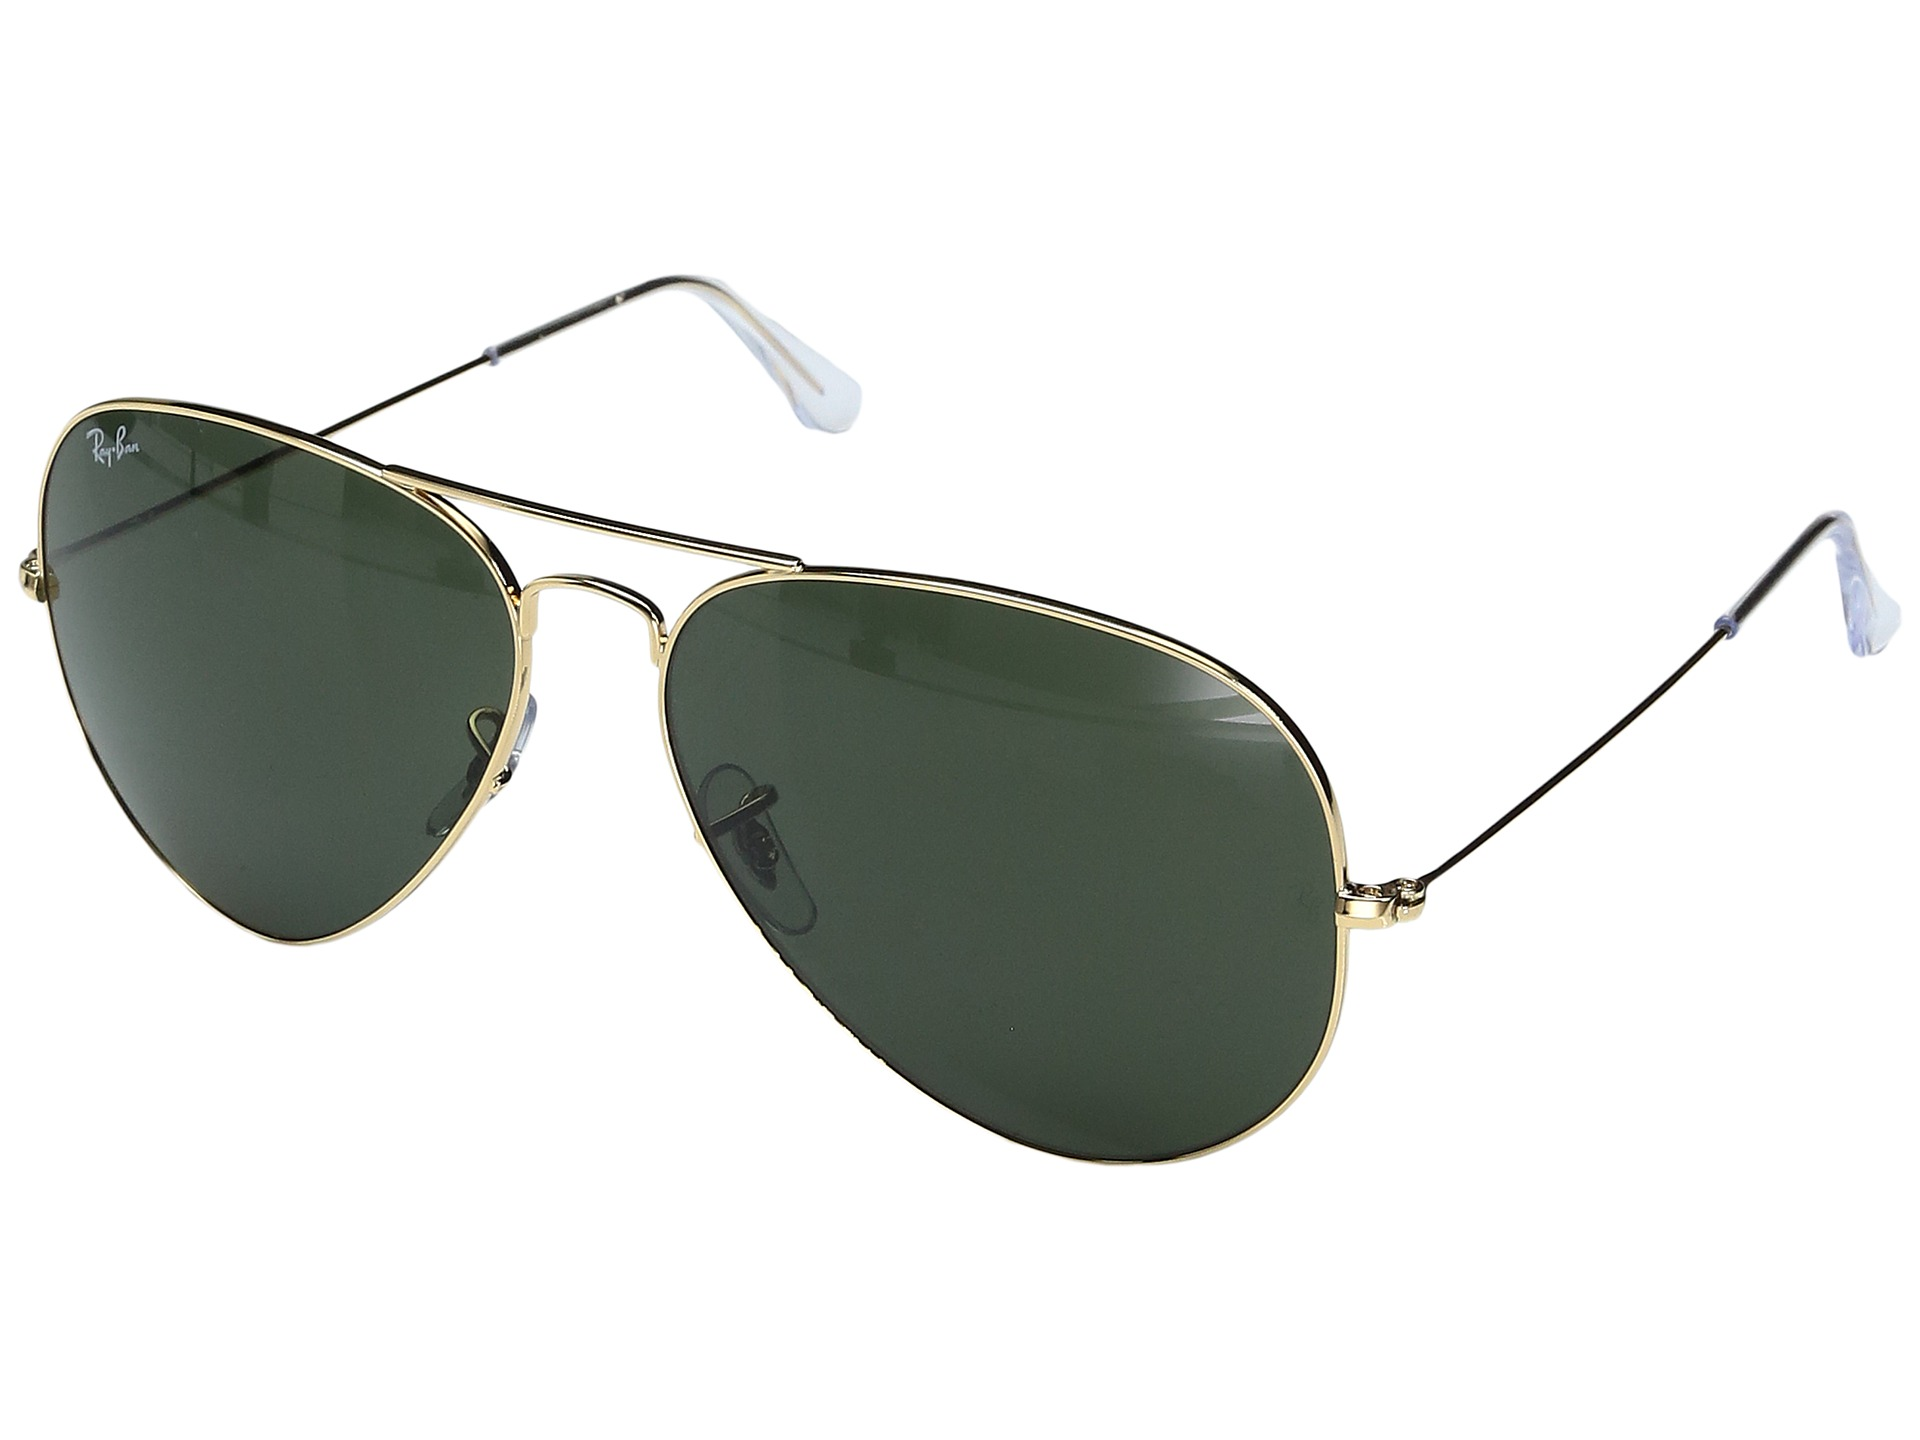 Ray Ban Sunglasses Aviators  ray ban rb3025 original aviator 62mm zappos com free shipping